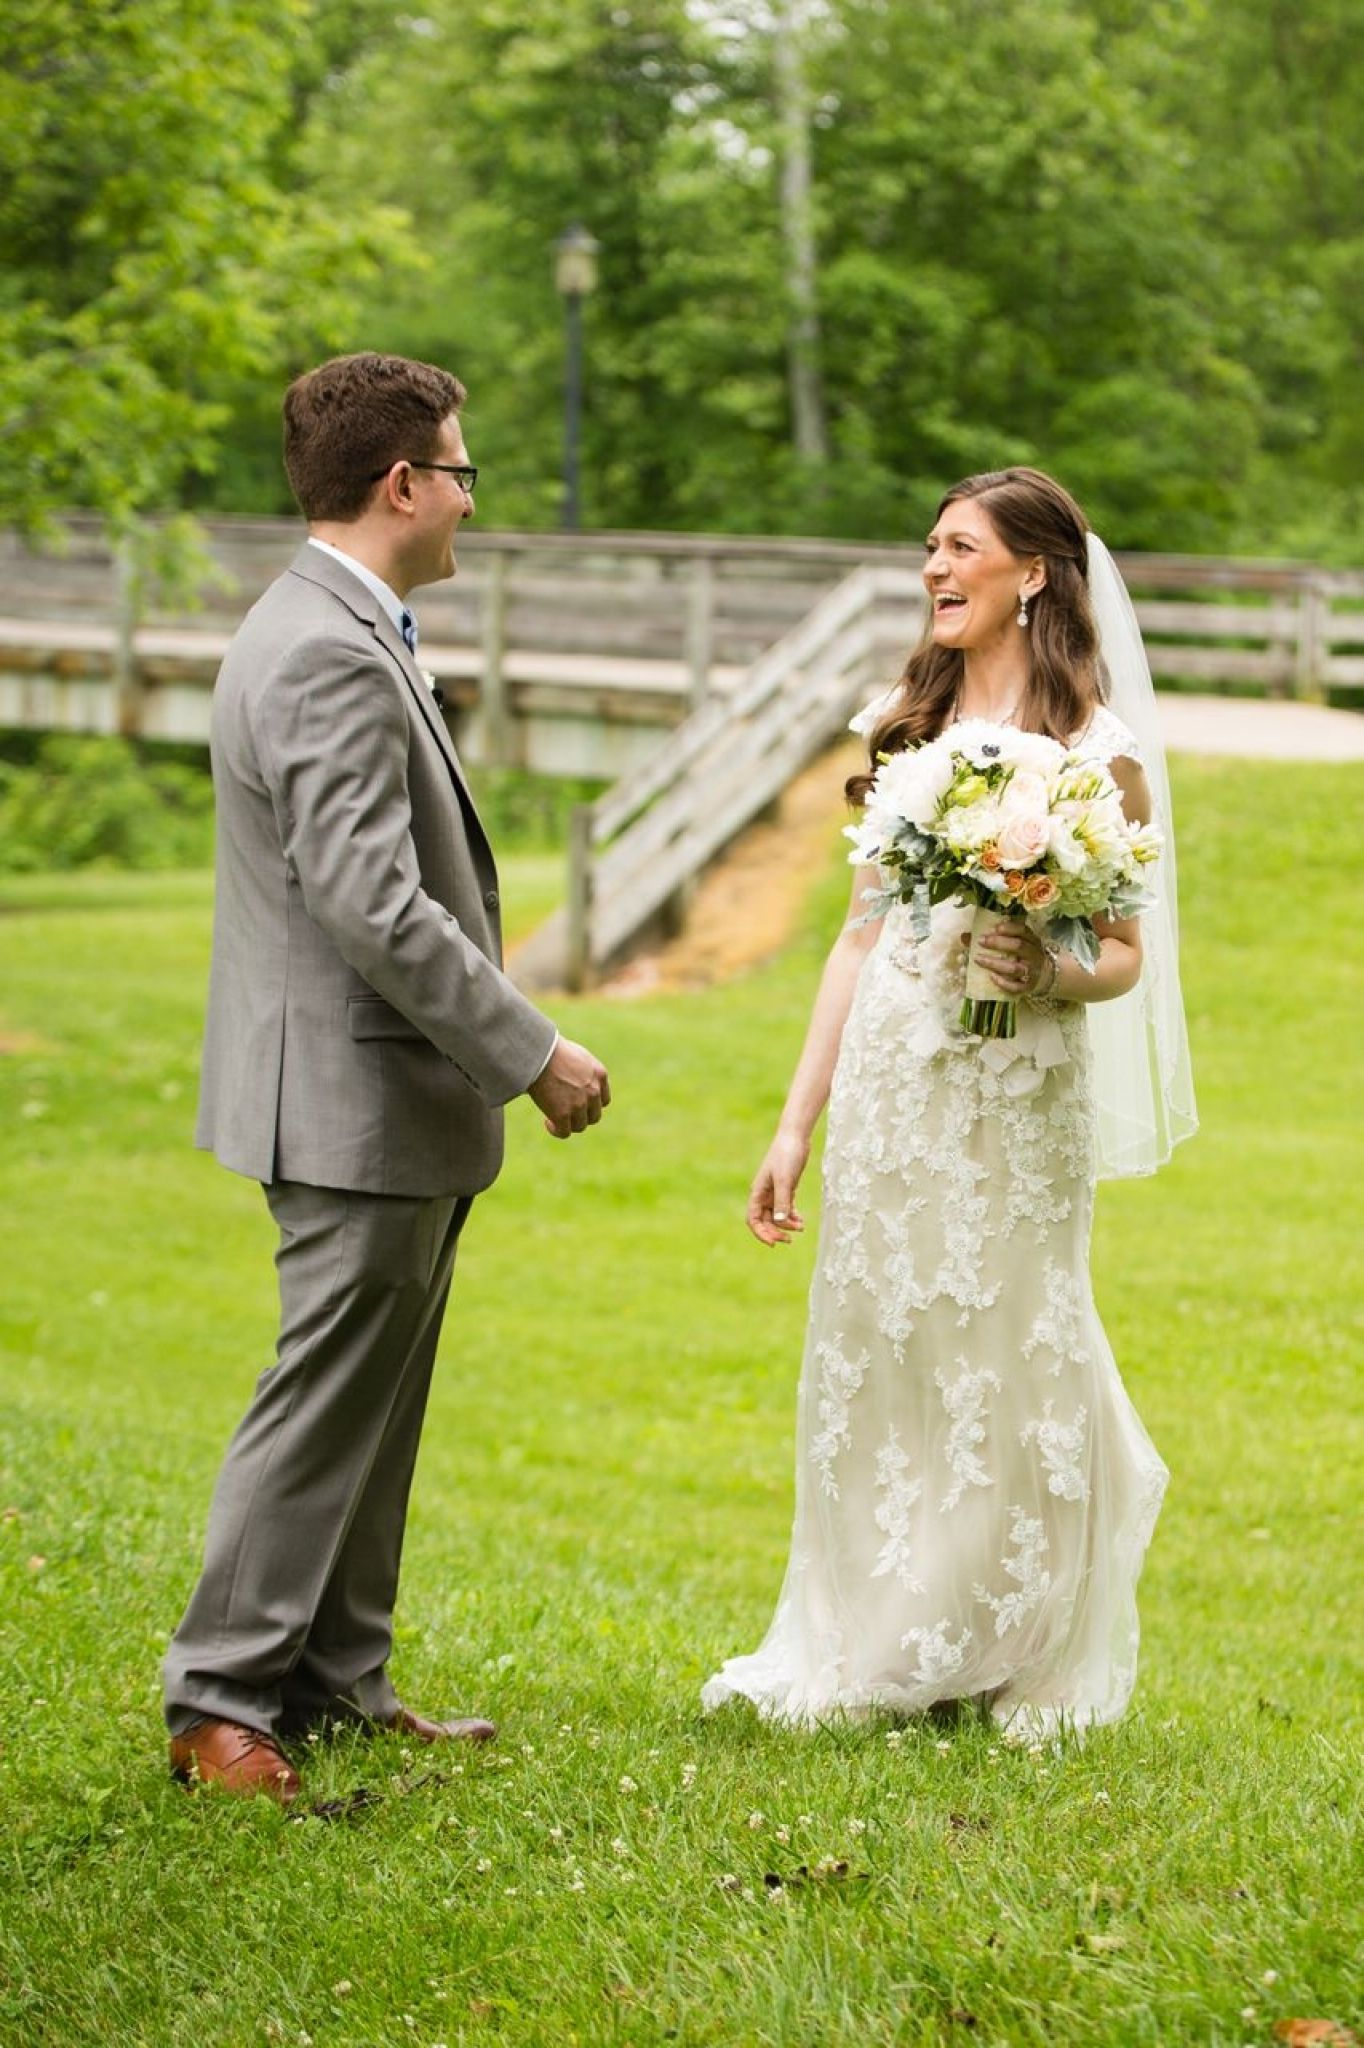 Simple outdoor wedding dresses cute dresses for a wedding check